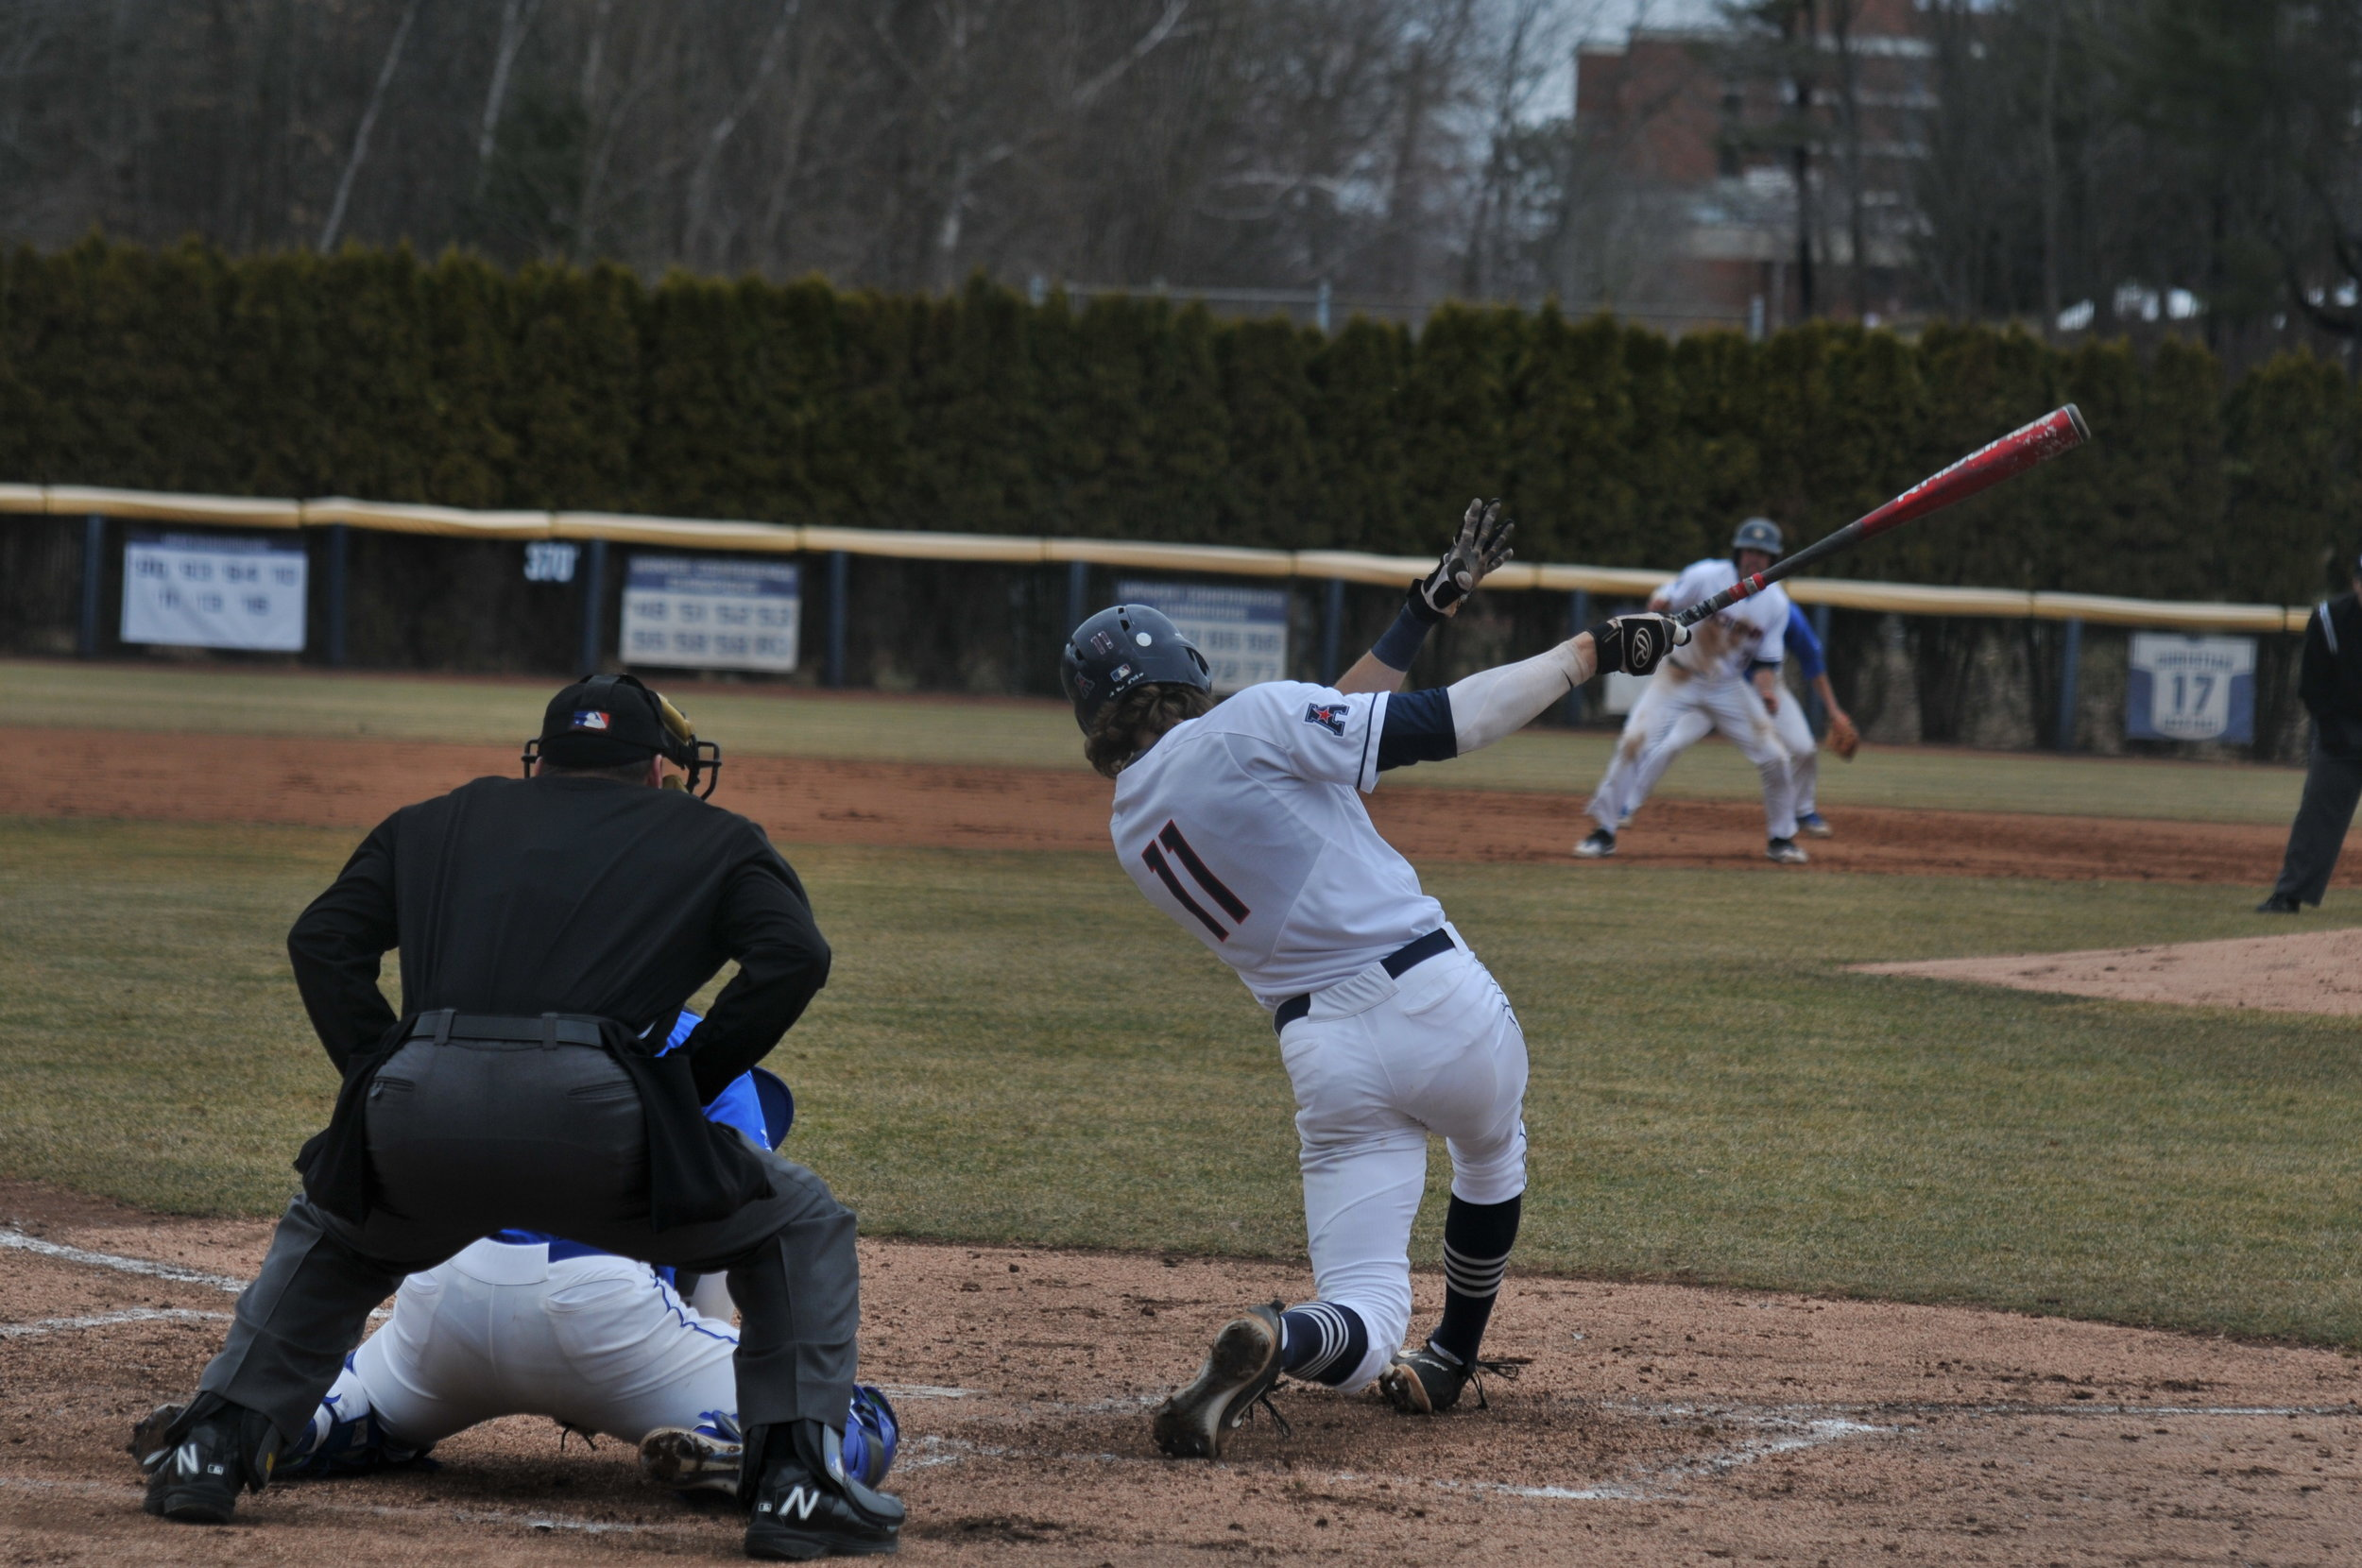 UConn and Hartford step back on the field for the double header on Friday Mar. 31. Pitcher Chase Gardner retired 14 batters in a row, leading to a Huskies victory, 1-0. (Photo by Jon Sammis/The Daily Campus)